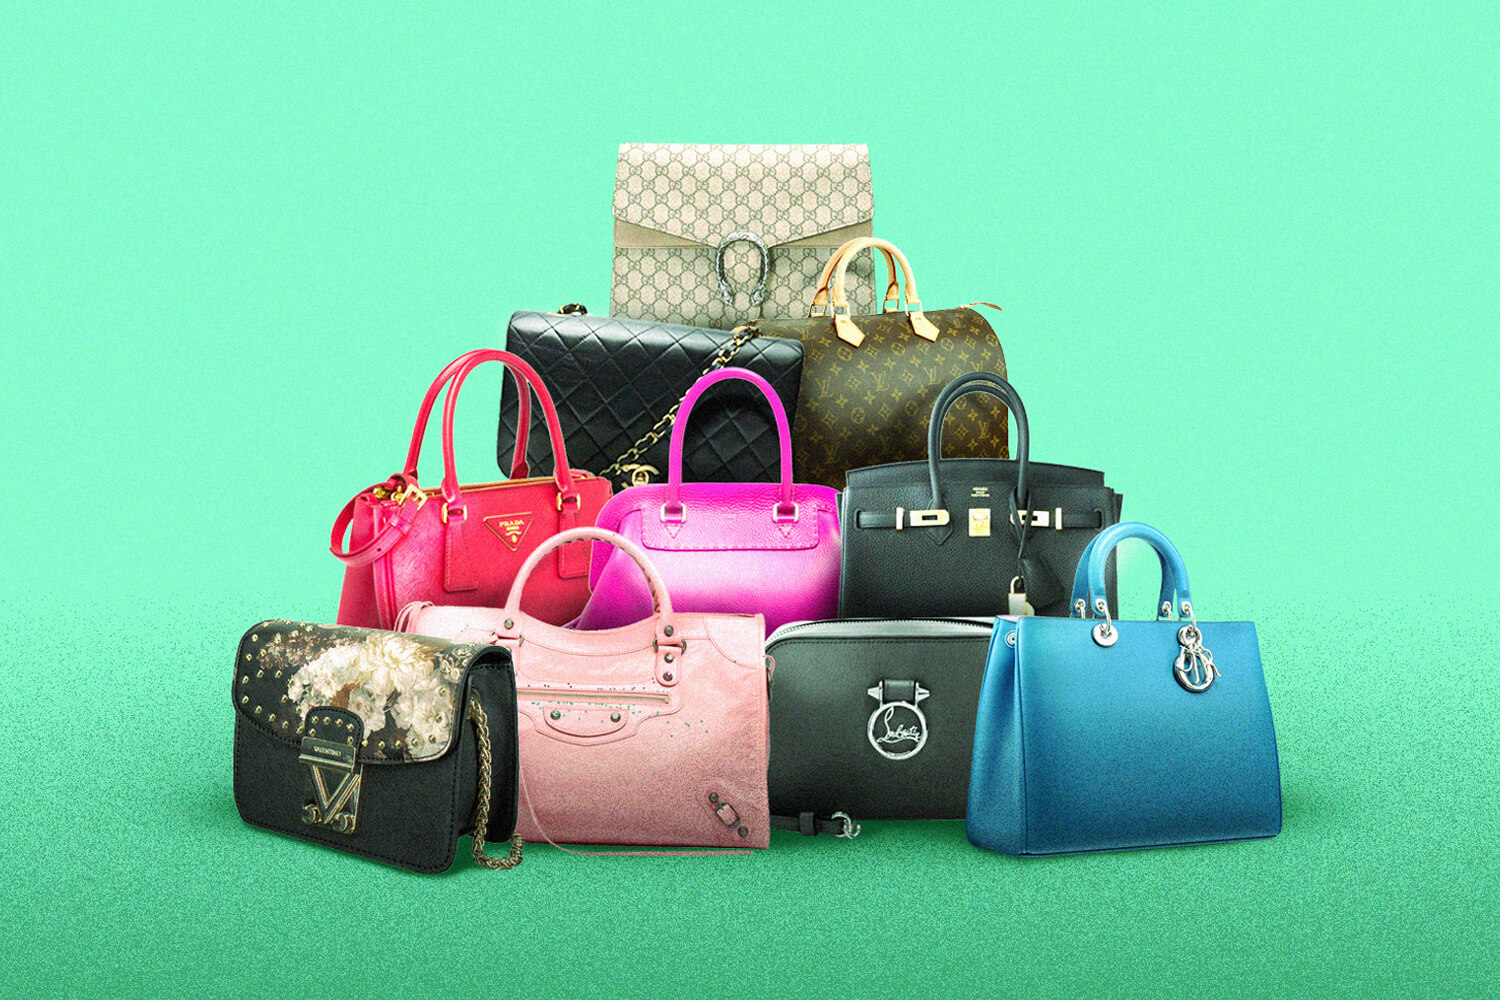 But will luxury brands take the bait? Francis Scialabba